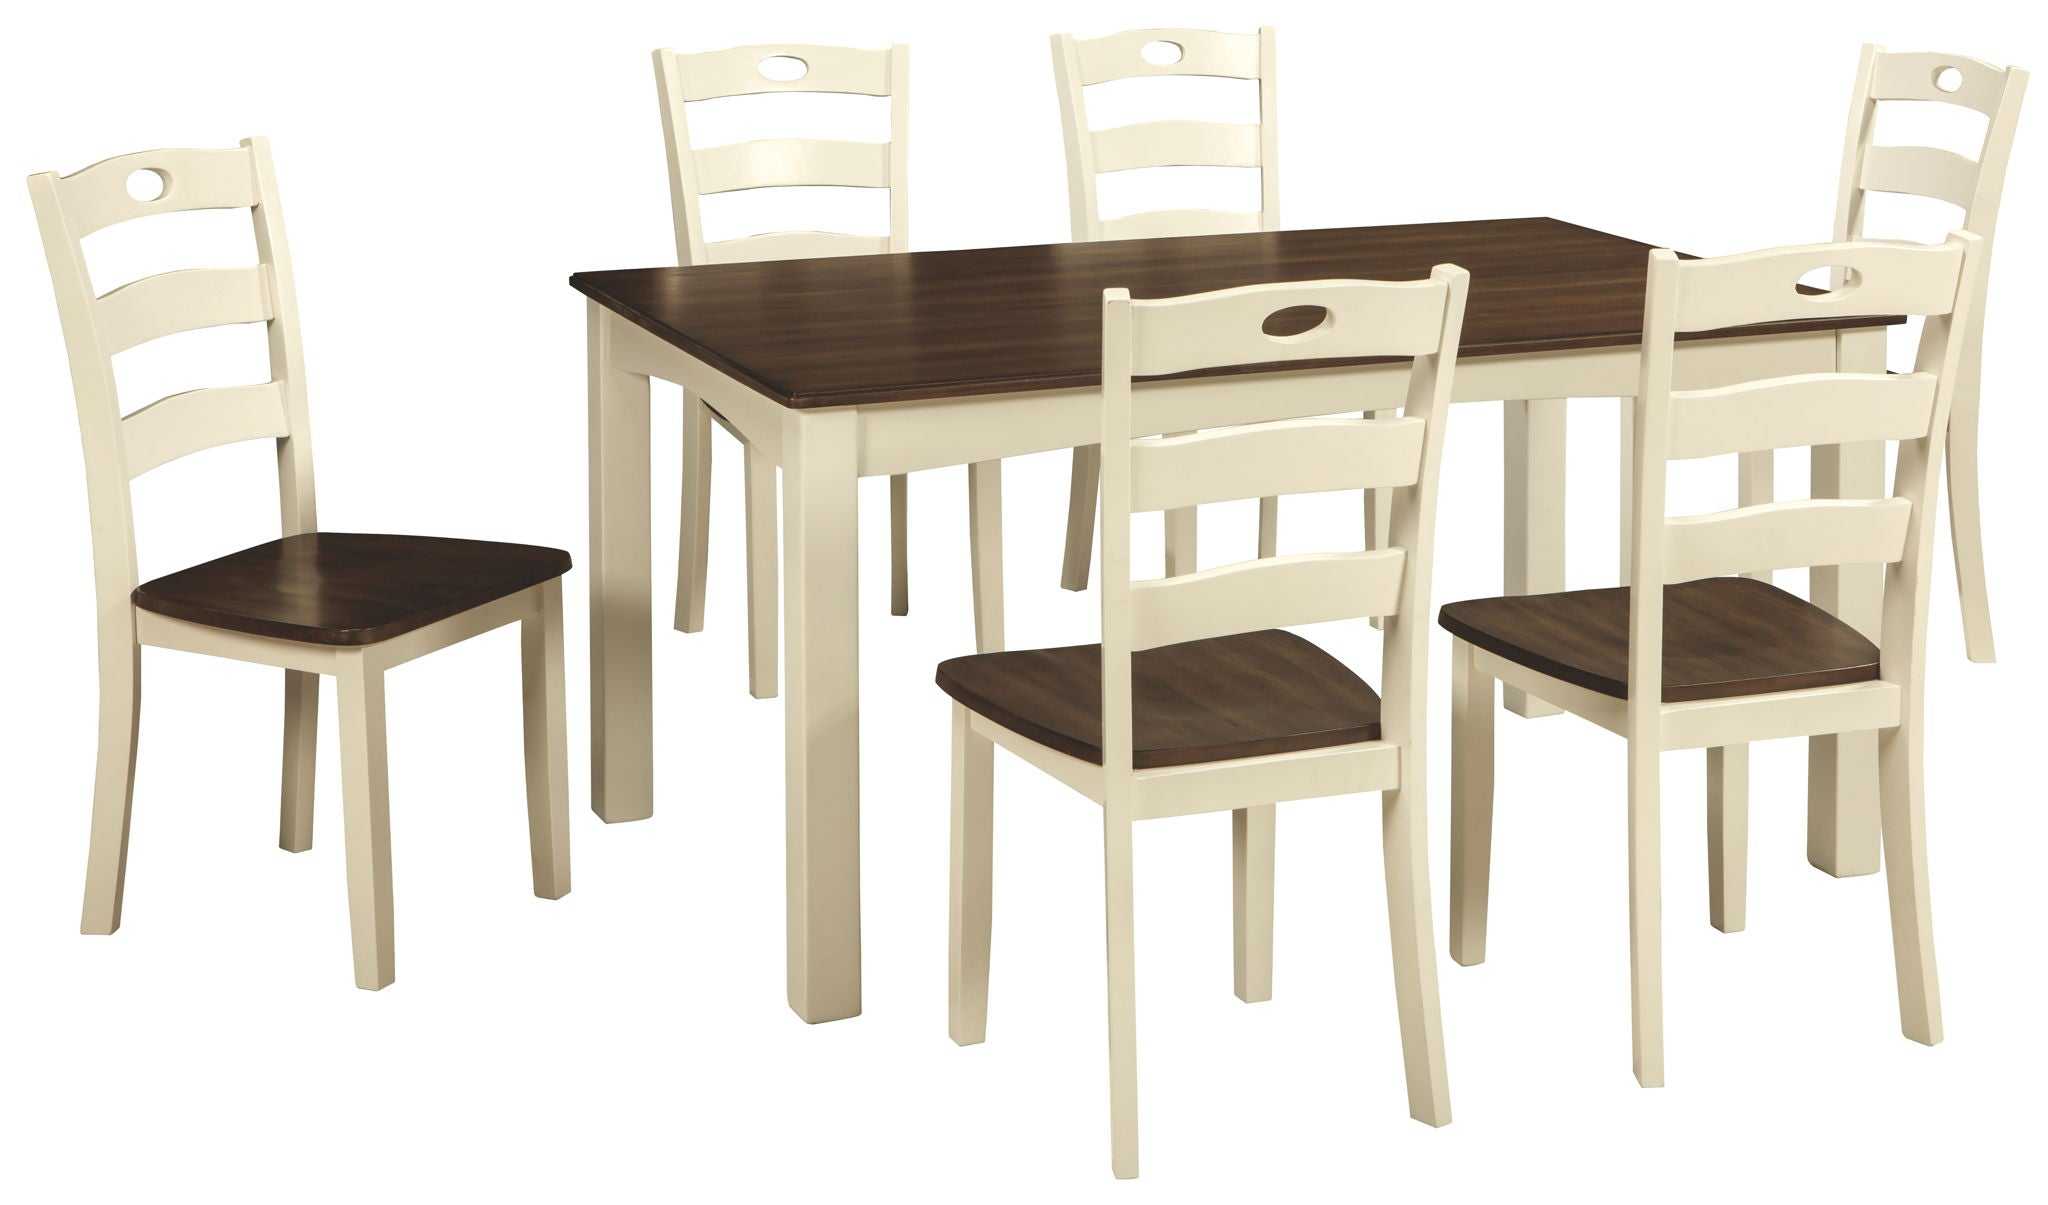 Woodanville Dining Room Table and Chairs (Set of 7) | Calgary's Furniture Store